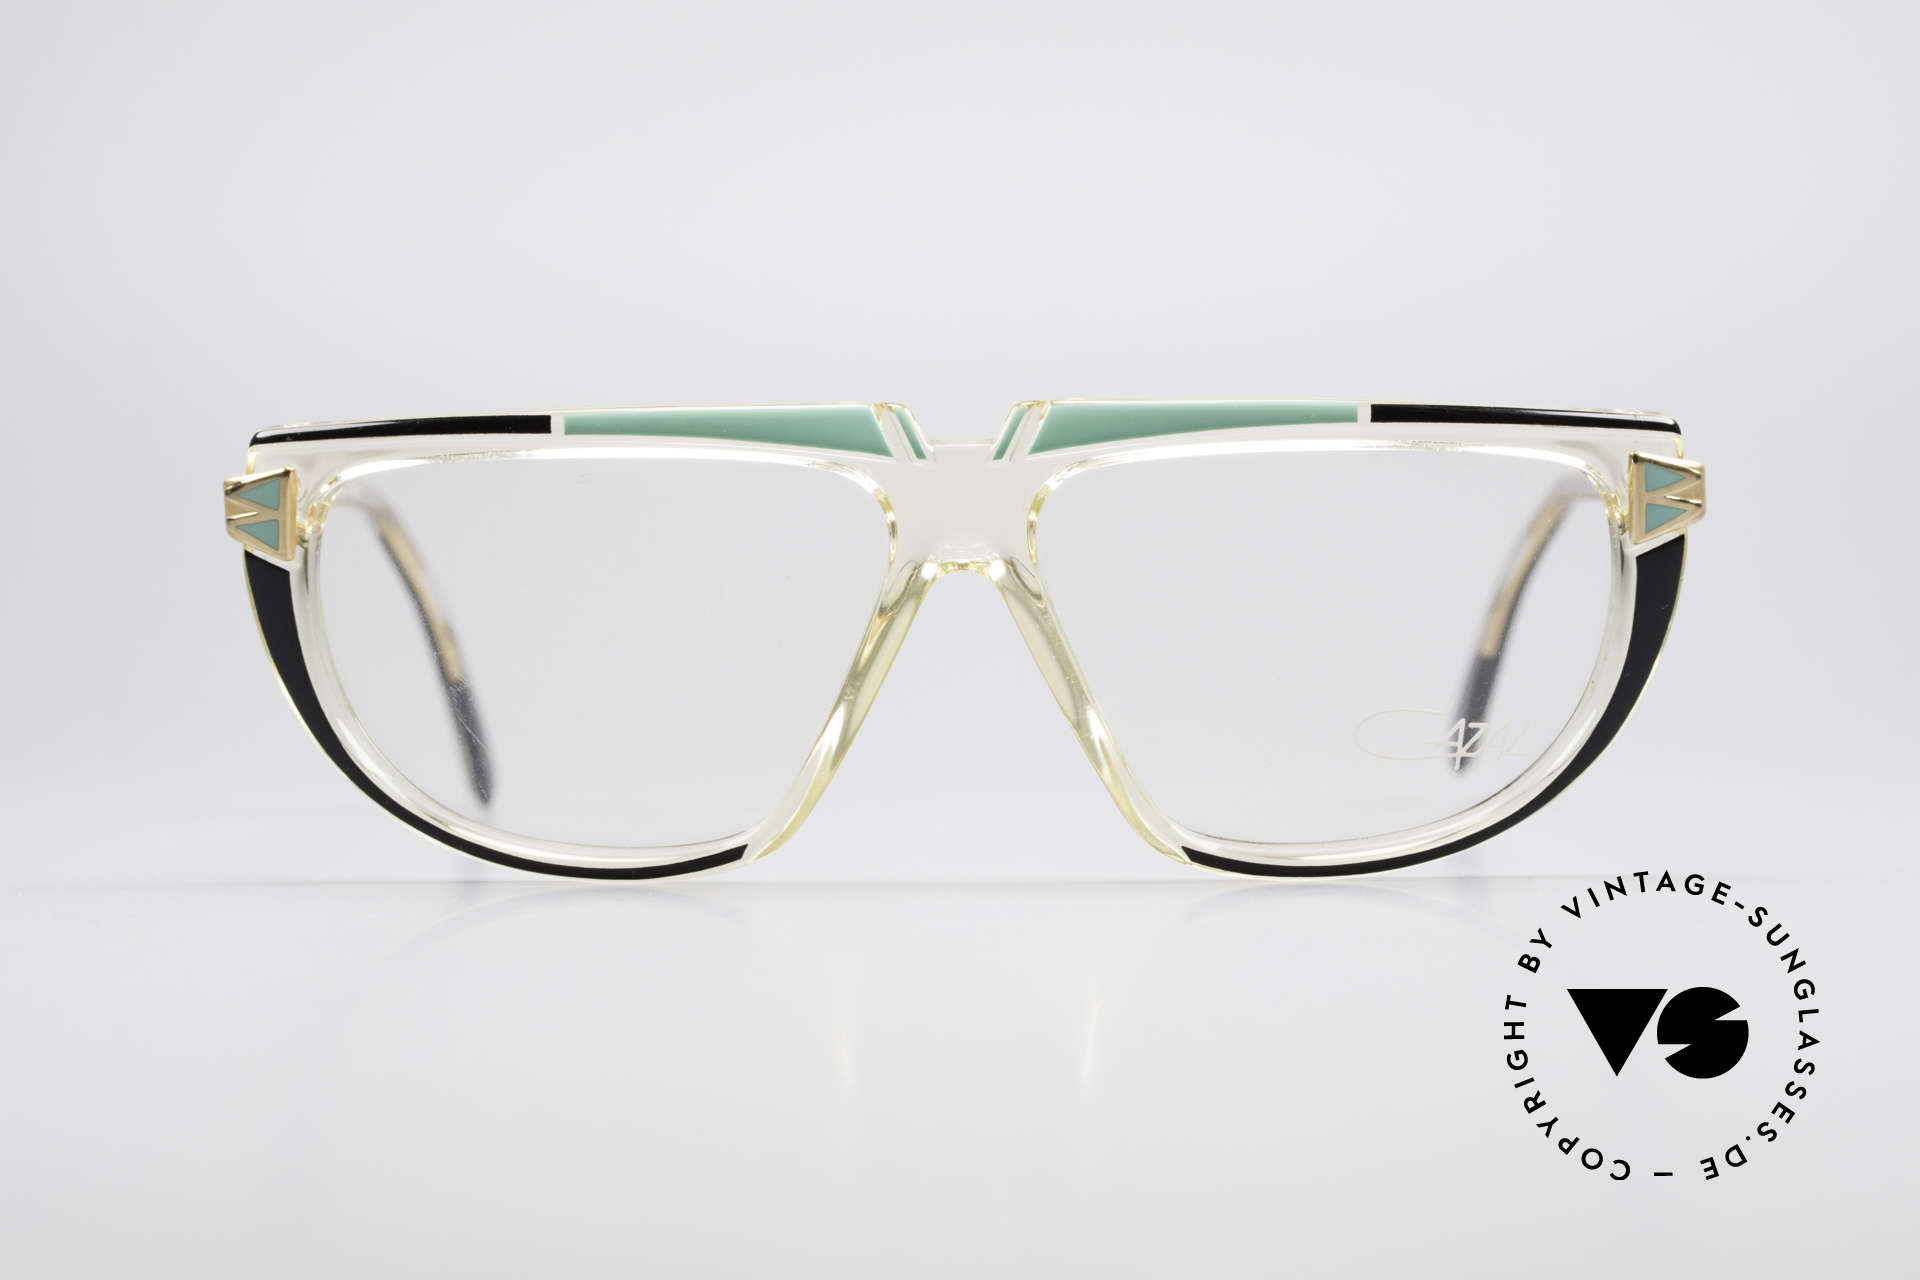 Cazal 316 True 80's Old School Glasses, fresh color combination from approx. 1988/89, Made for Men and Women